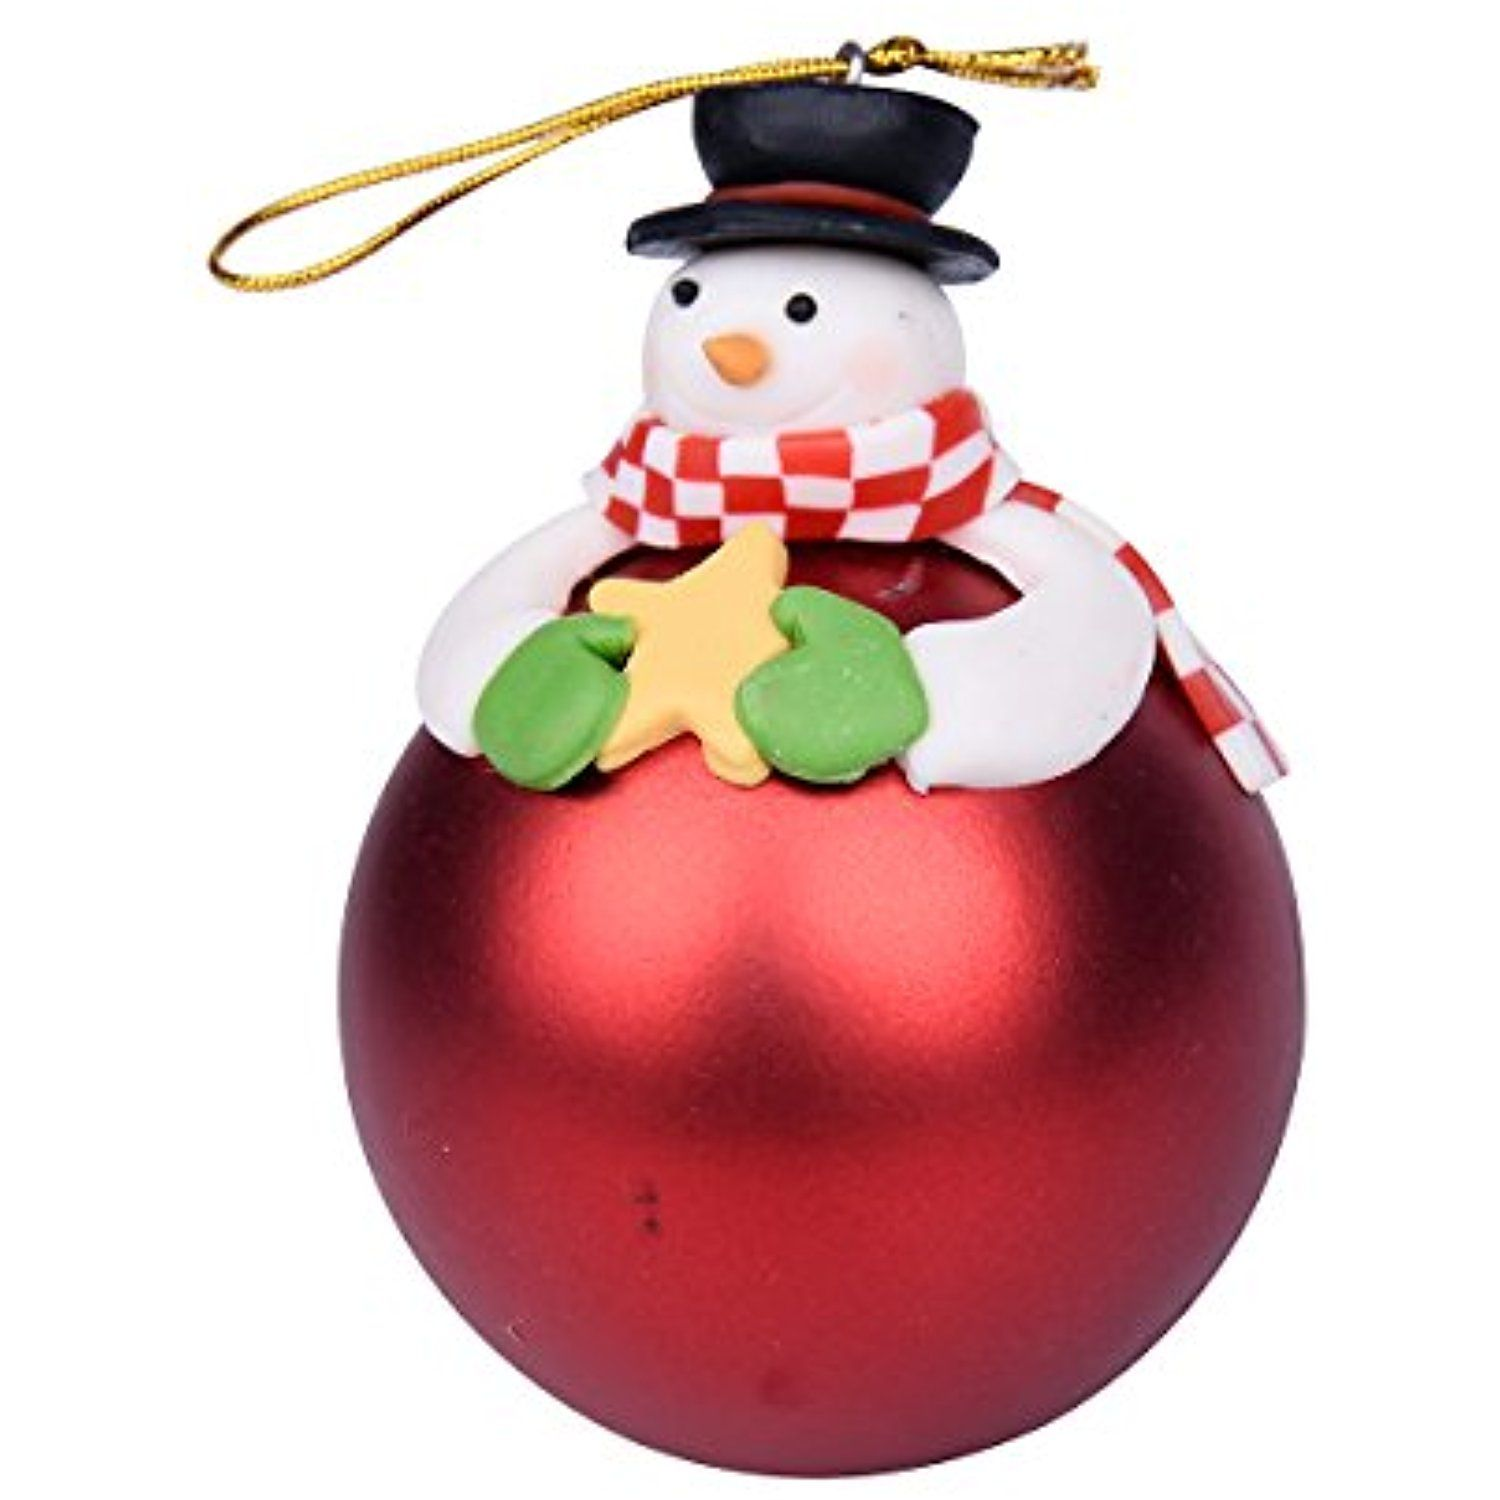 Christmas Tree Balls.Christmas Tree Decorations Cartoon Ball Ornaments 9cm Xmas